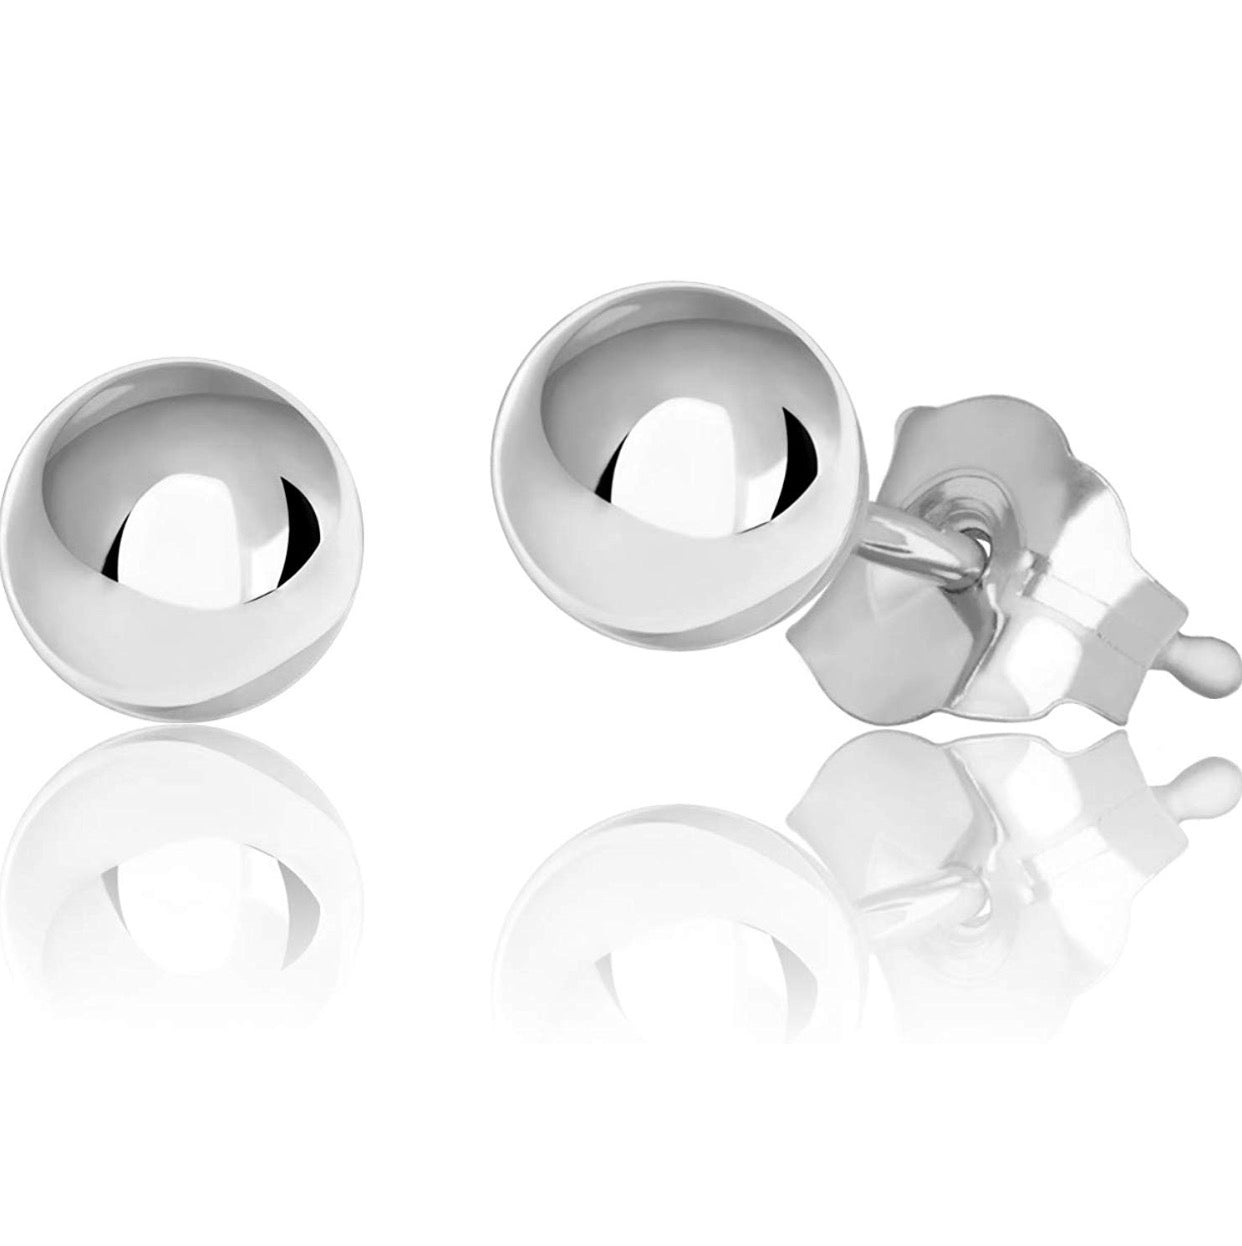 14K White Gold Ball Earring Stud 4MM